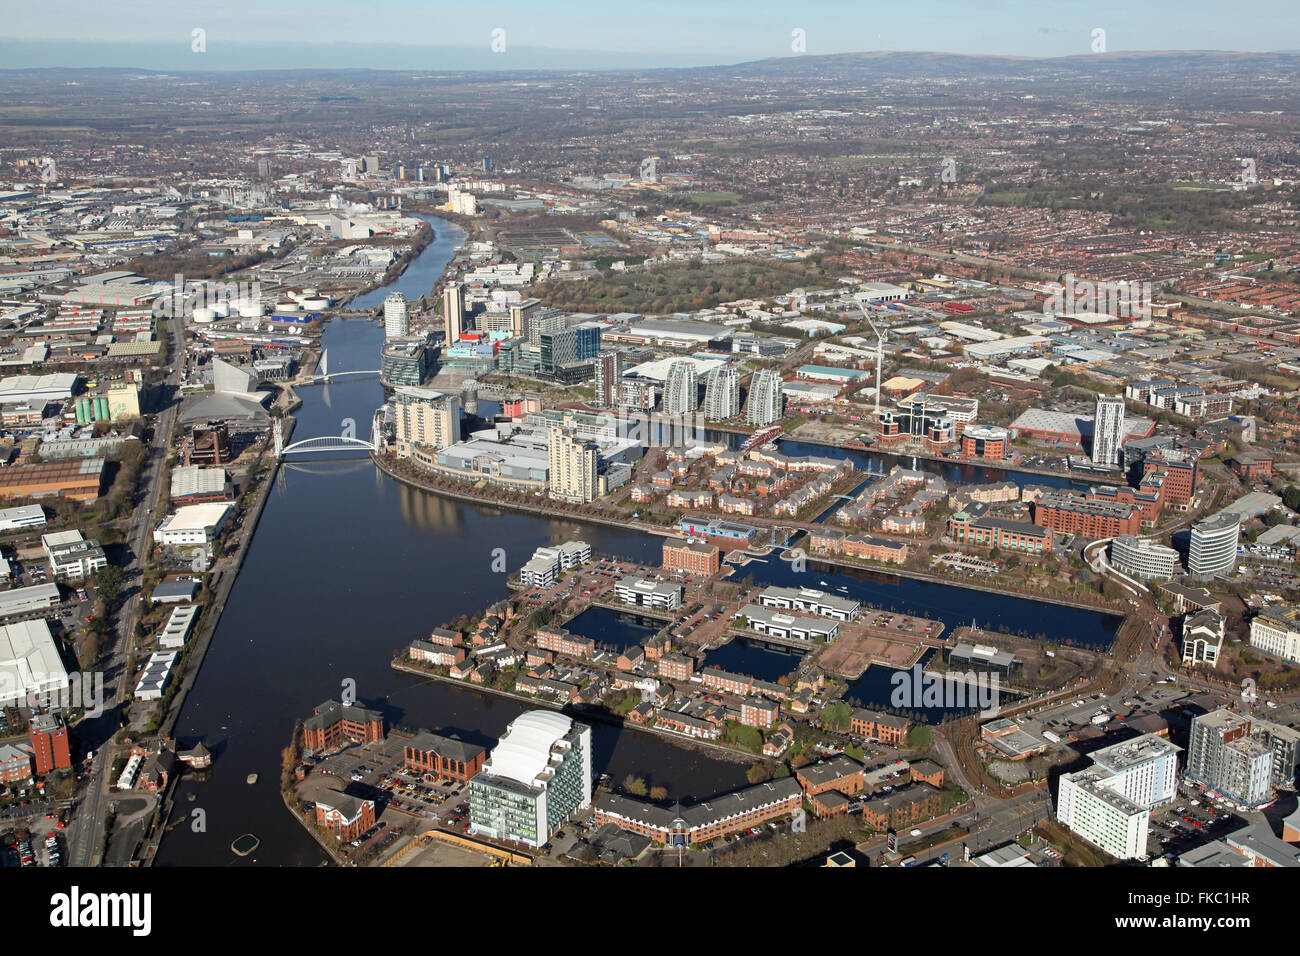 aerial view of Salford Quays near Manchester, UK - Stock Image